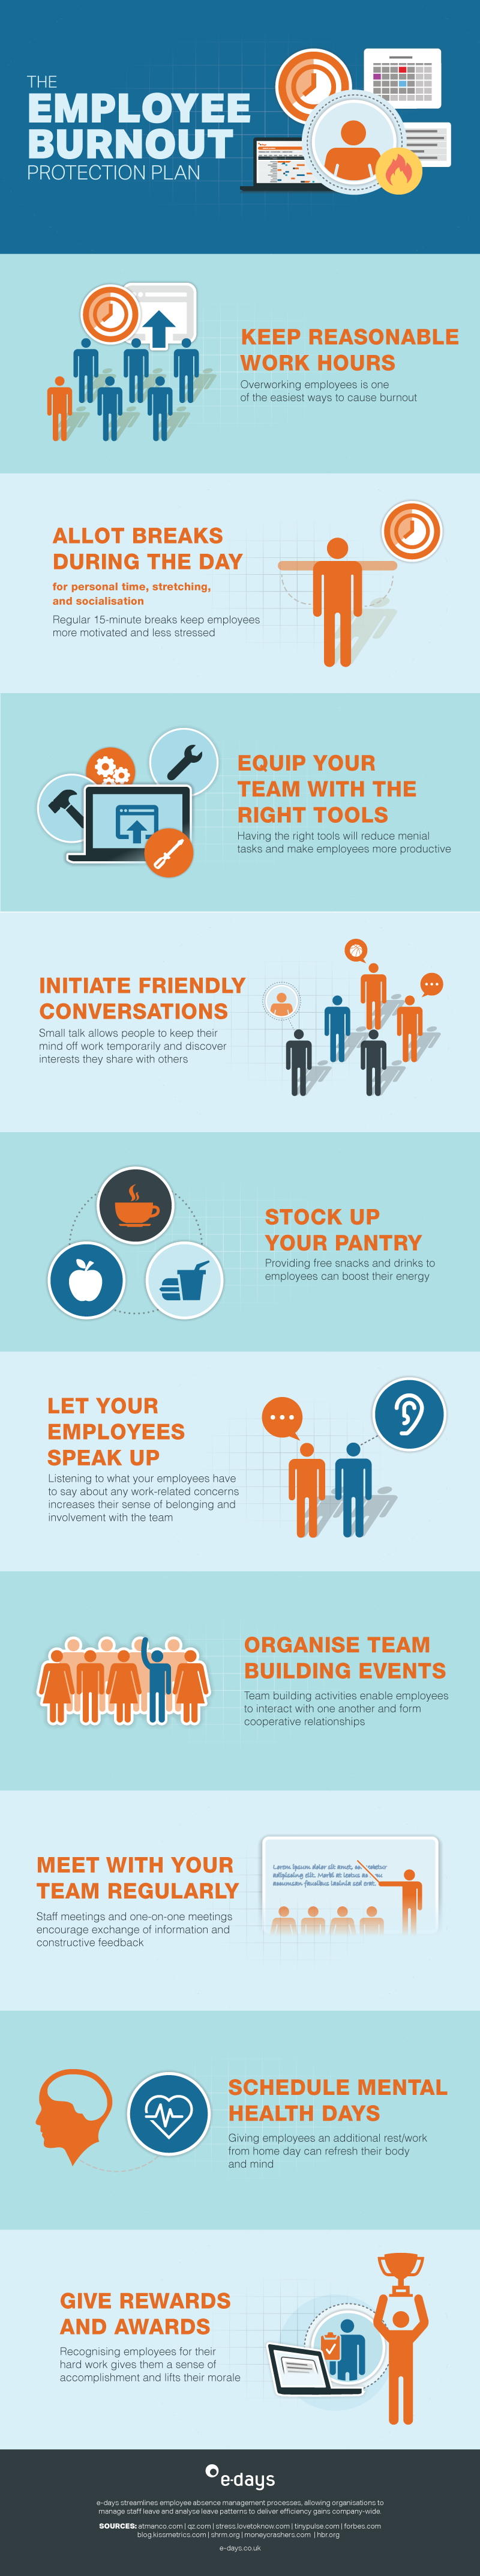 [Infographic] The Employee Burnout Protection Plan